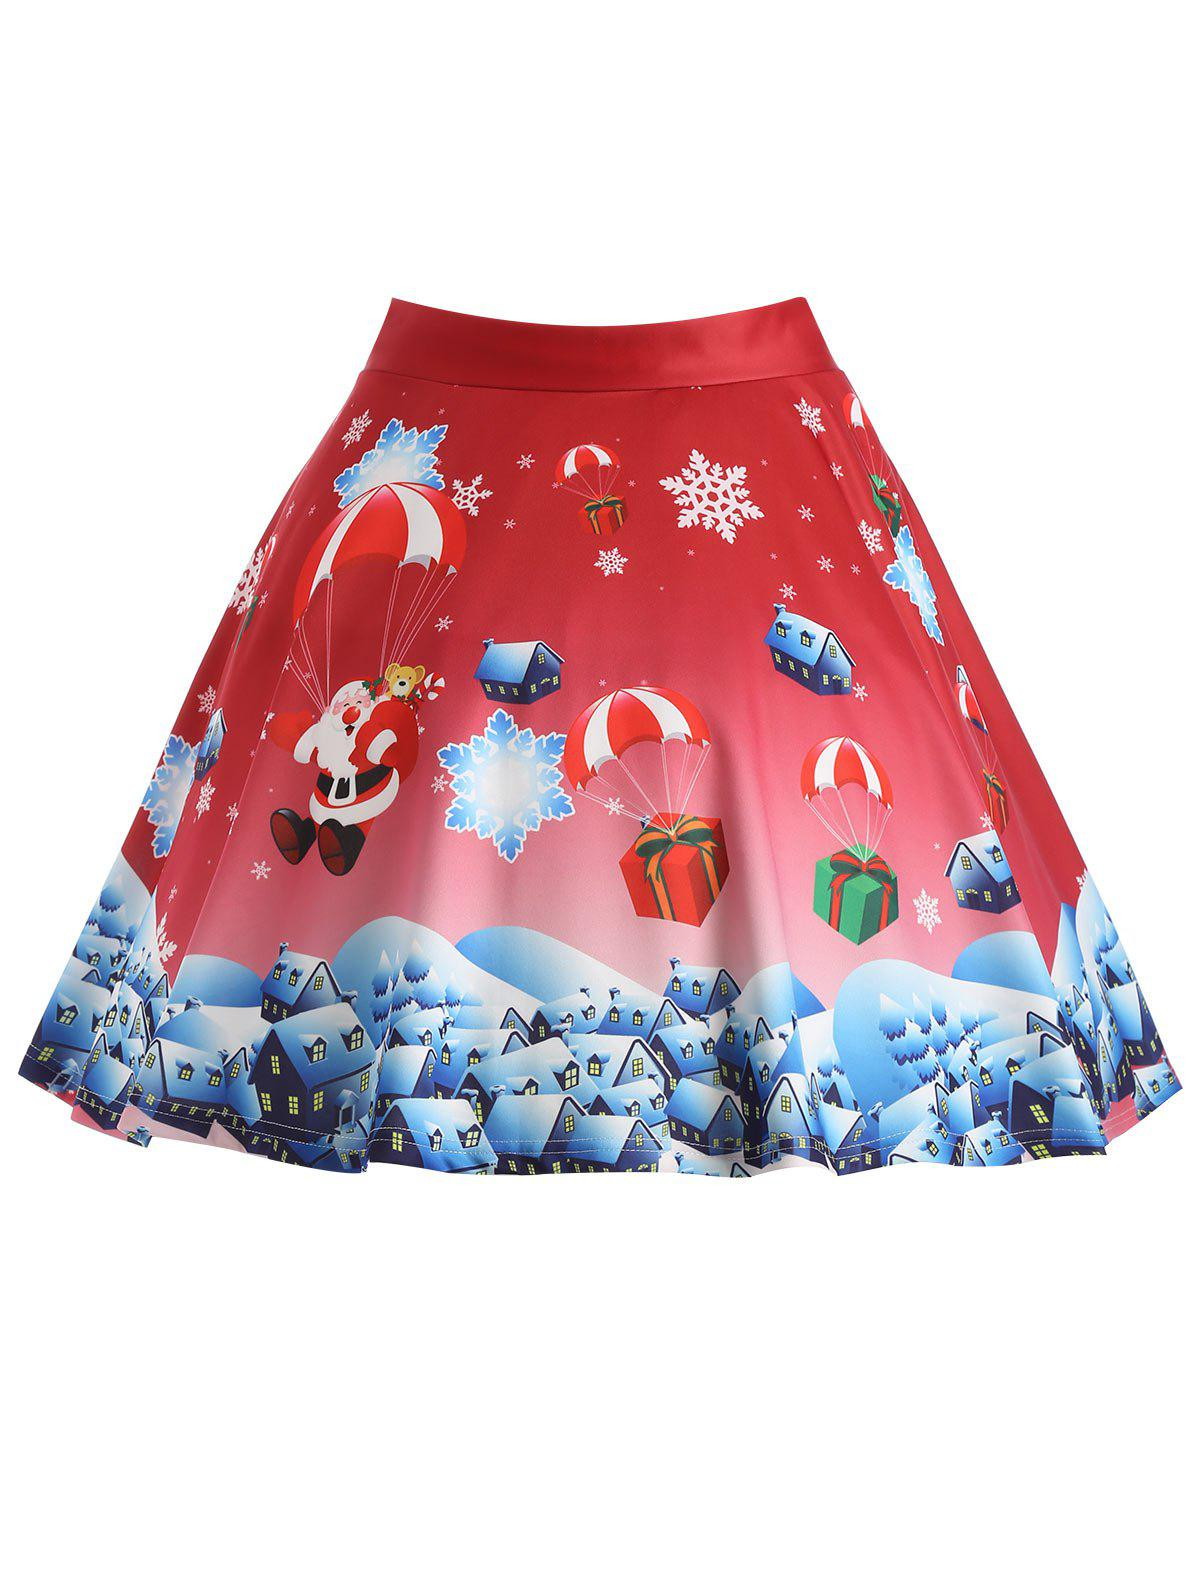 Fancy Plus Size Christmas Gift Santa Claus Print Skirt